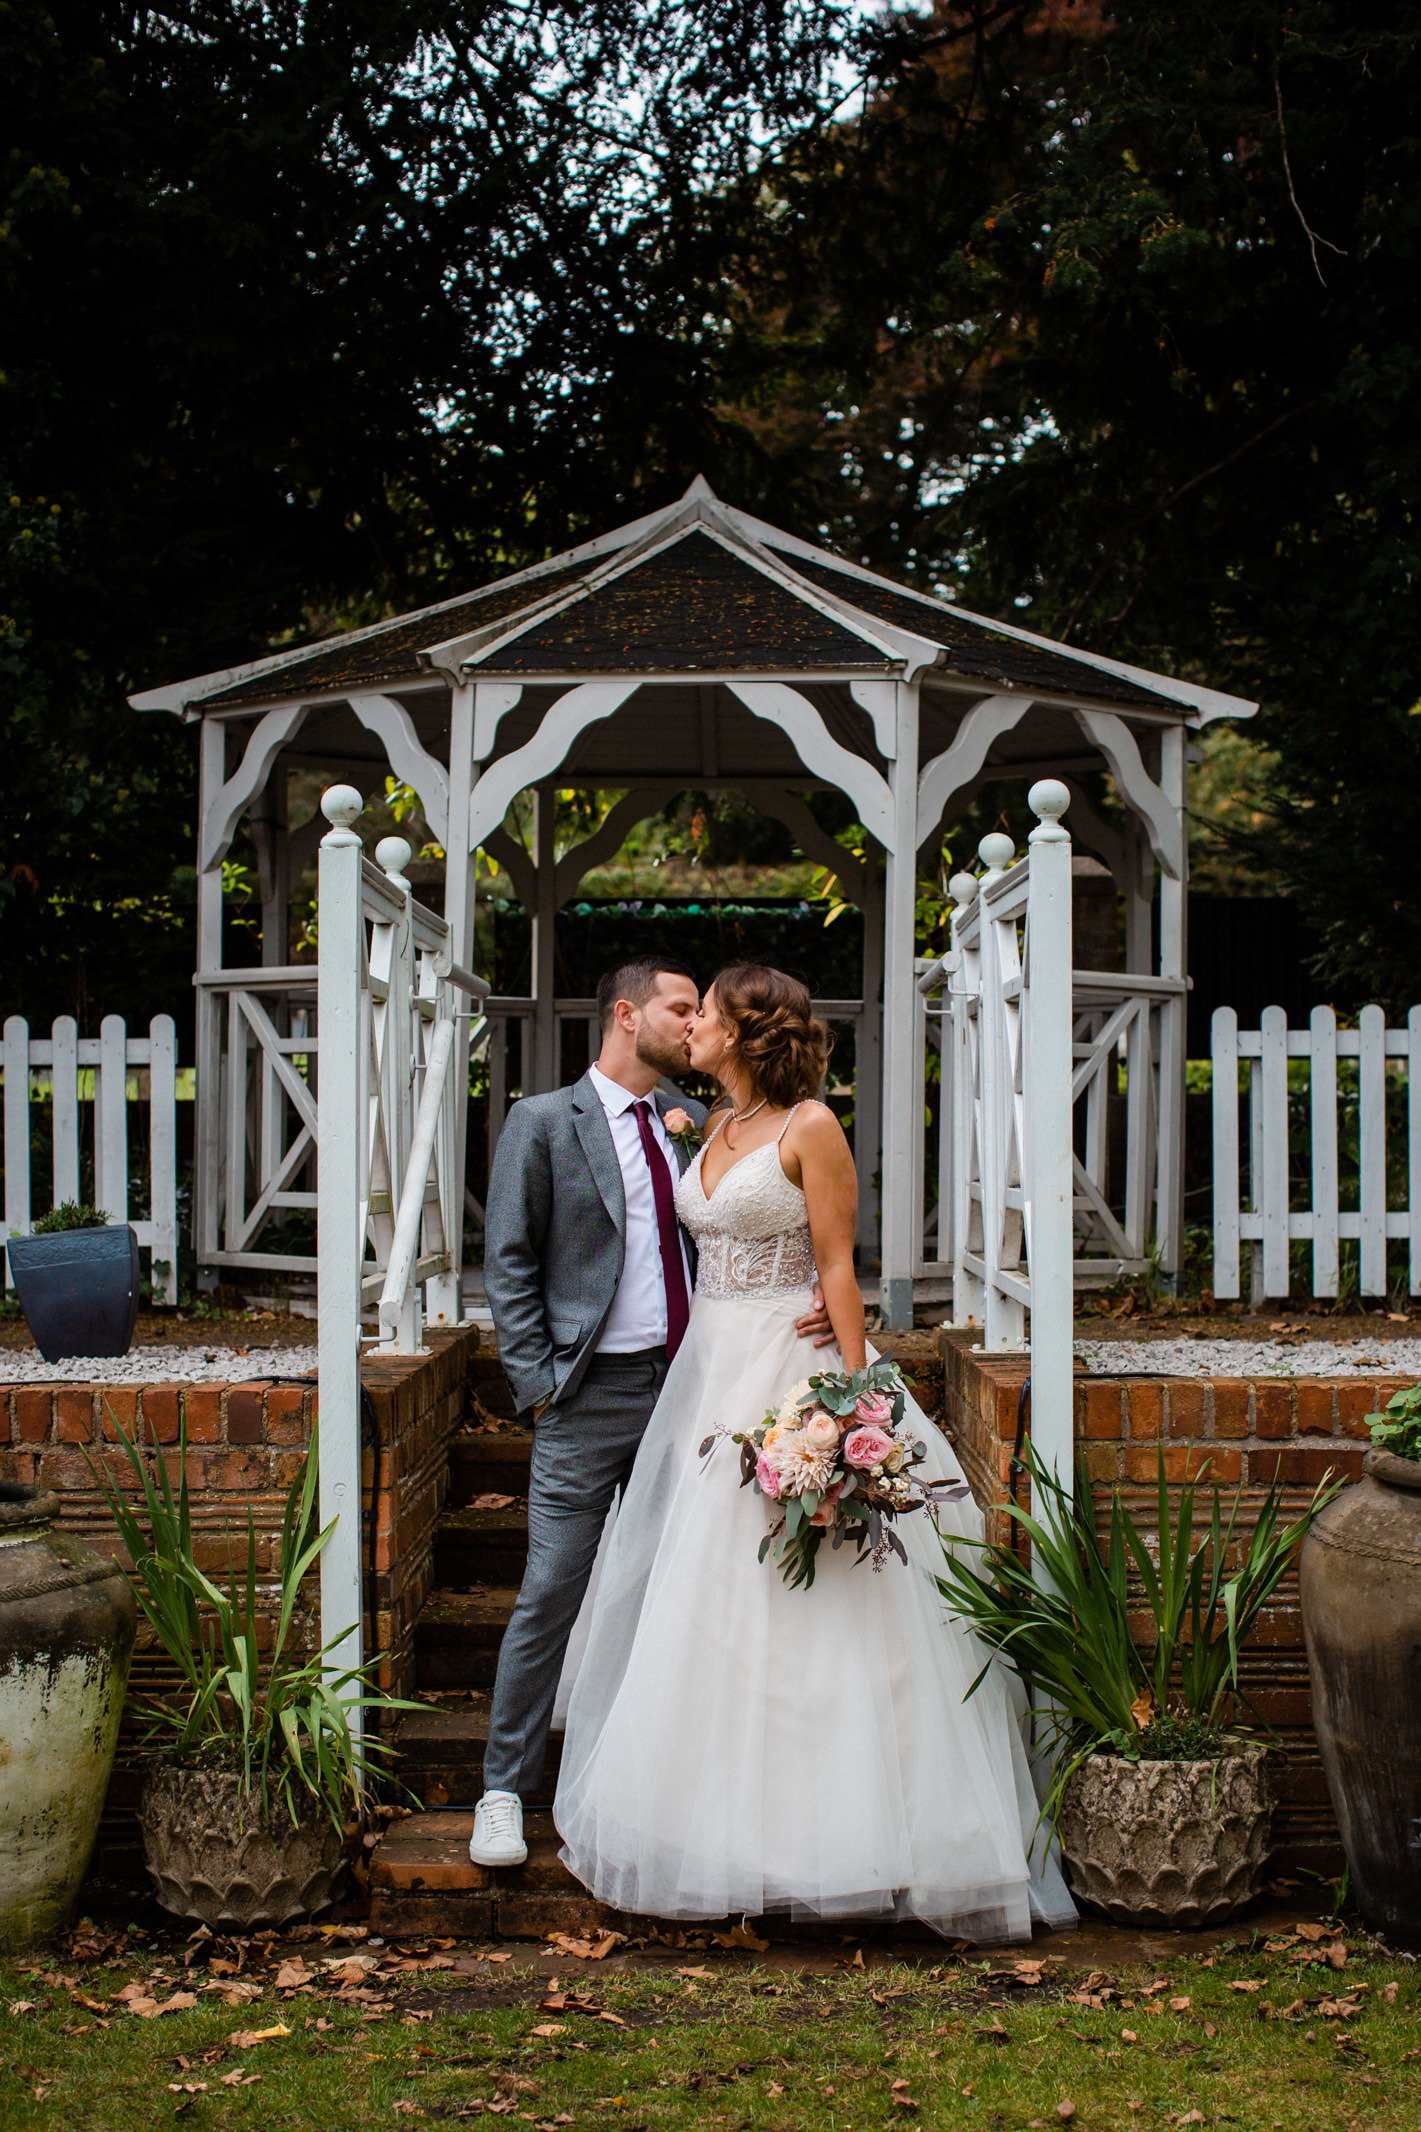 The Elephant Pangbourne Wedding - Stunning Kayleigh & Shane 56